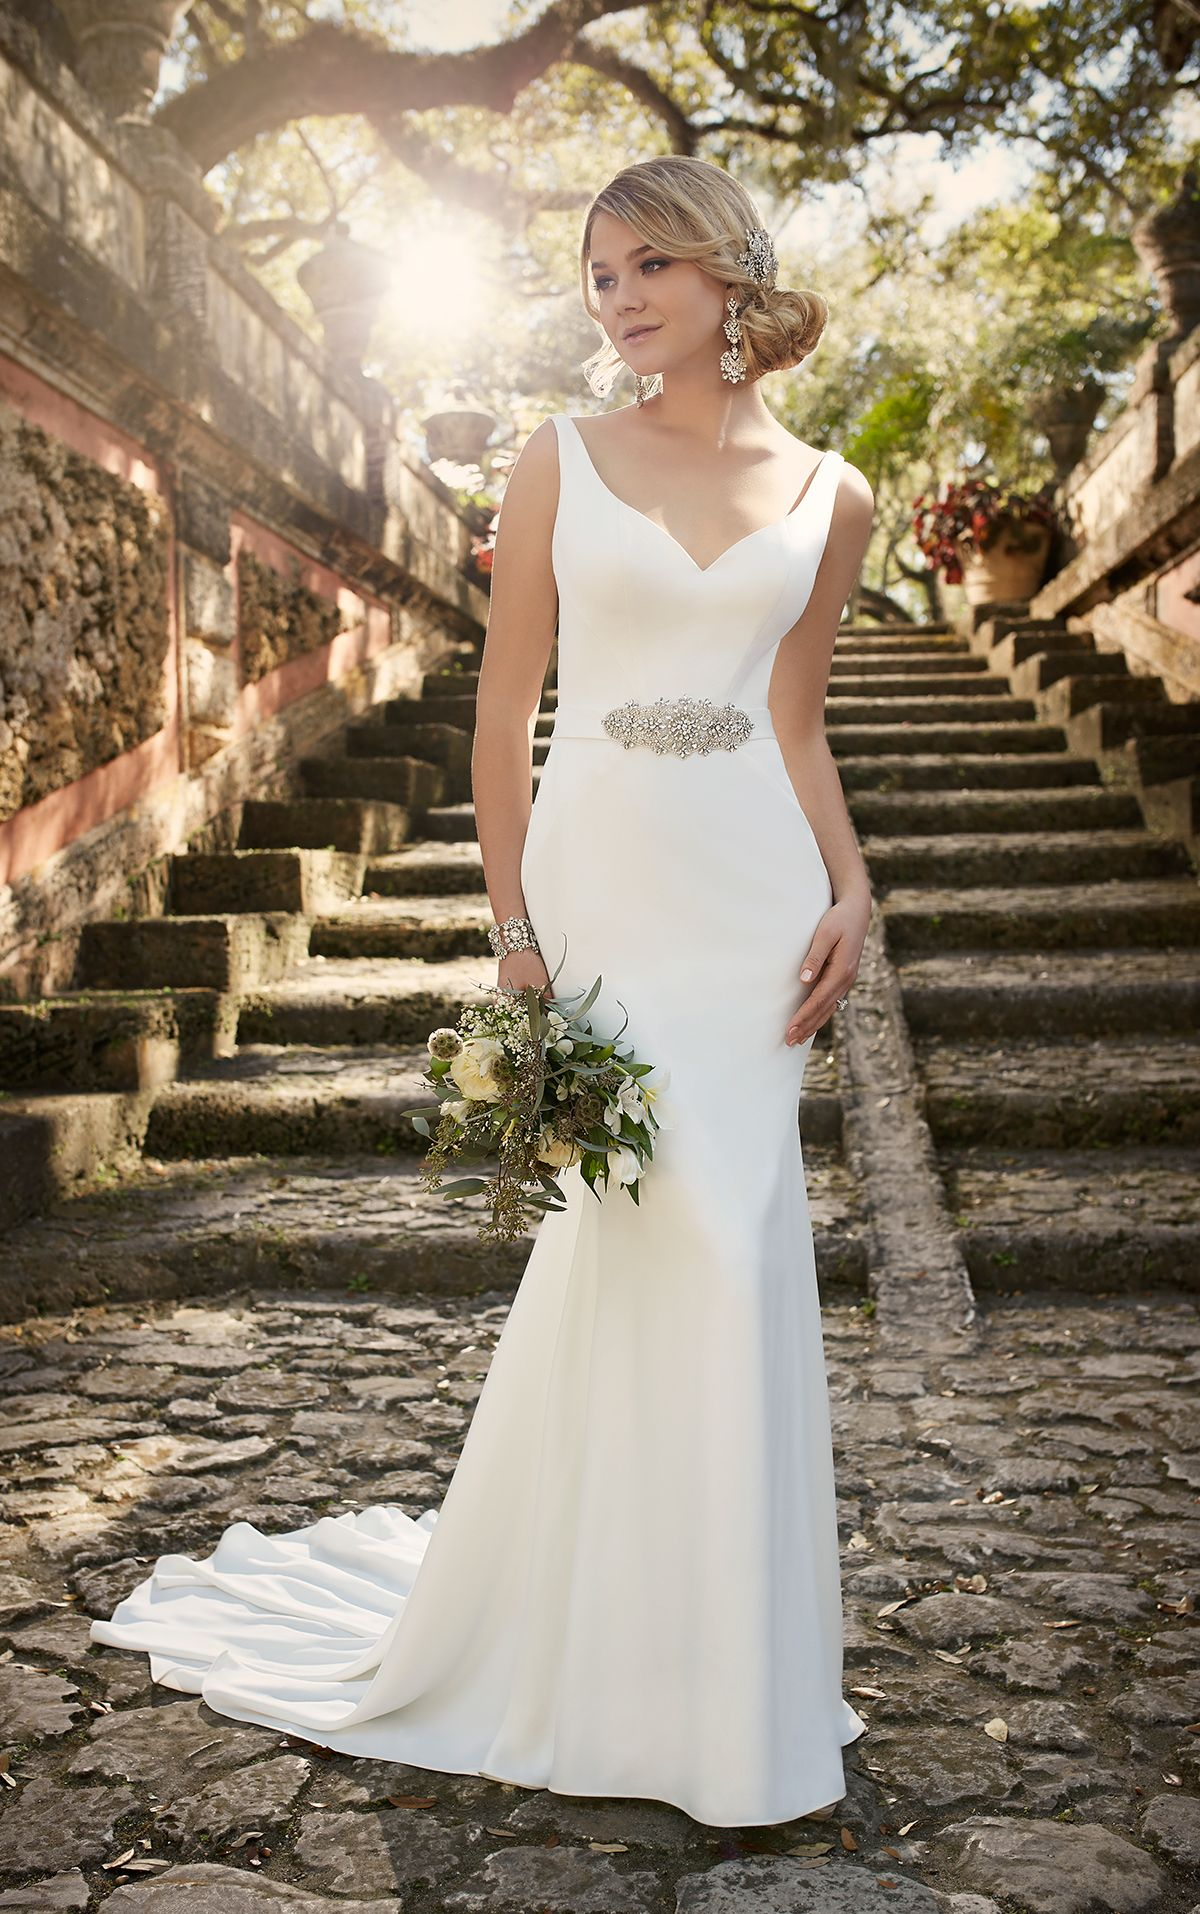 This classic, yet modern crepe sheath silhouette bridal gown from the Essense of Australia wedding dress collection features a detachable beaded crepe belt, plunging neckline, and a pretty chapel train. #brides #wedding